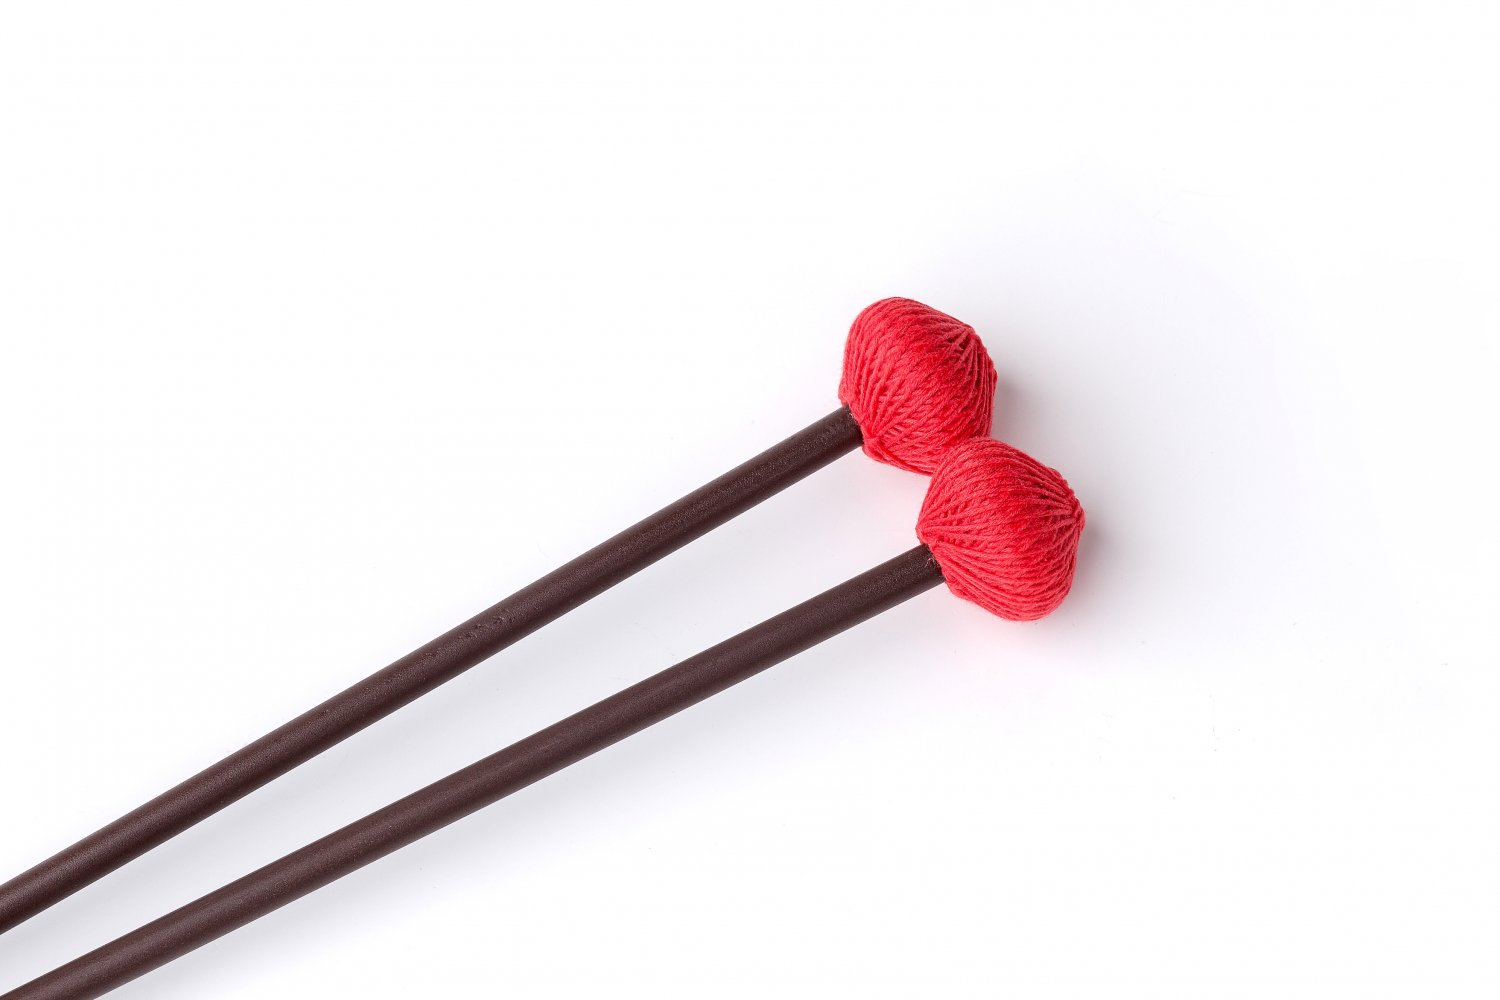 Ashkatan S90 Hard Marimba Mallets - Maple Handle, Red Yarn